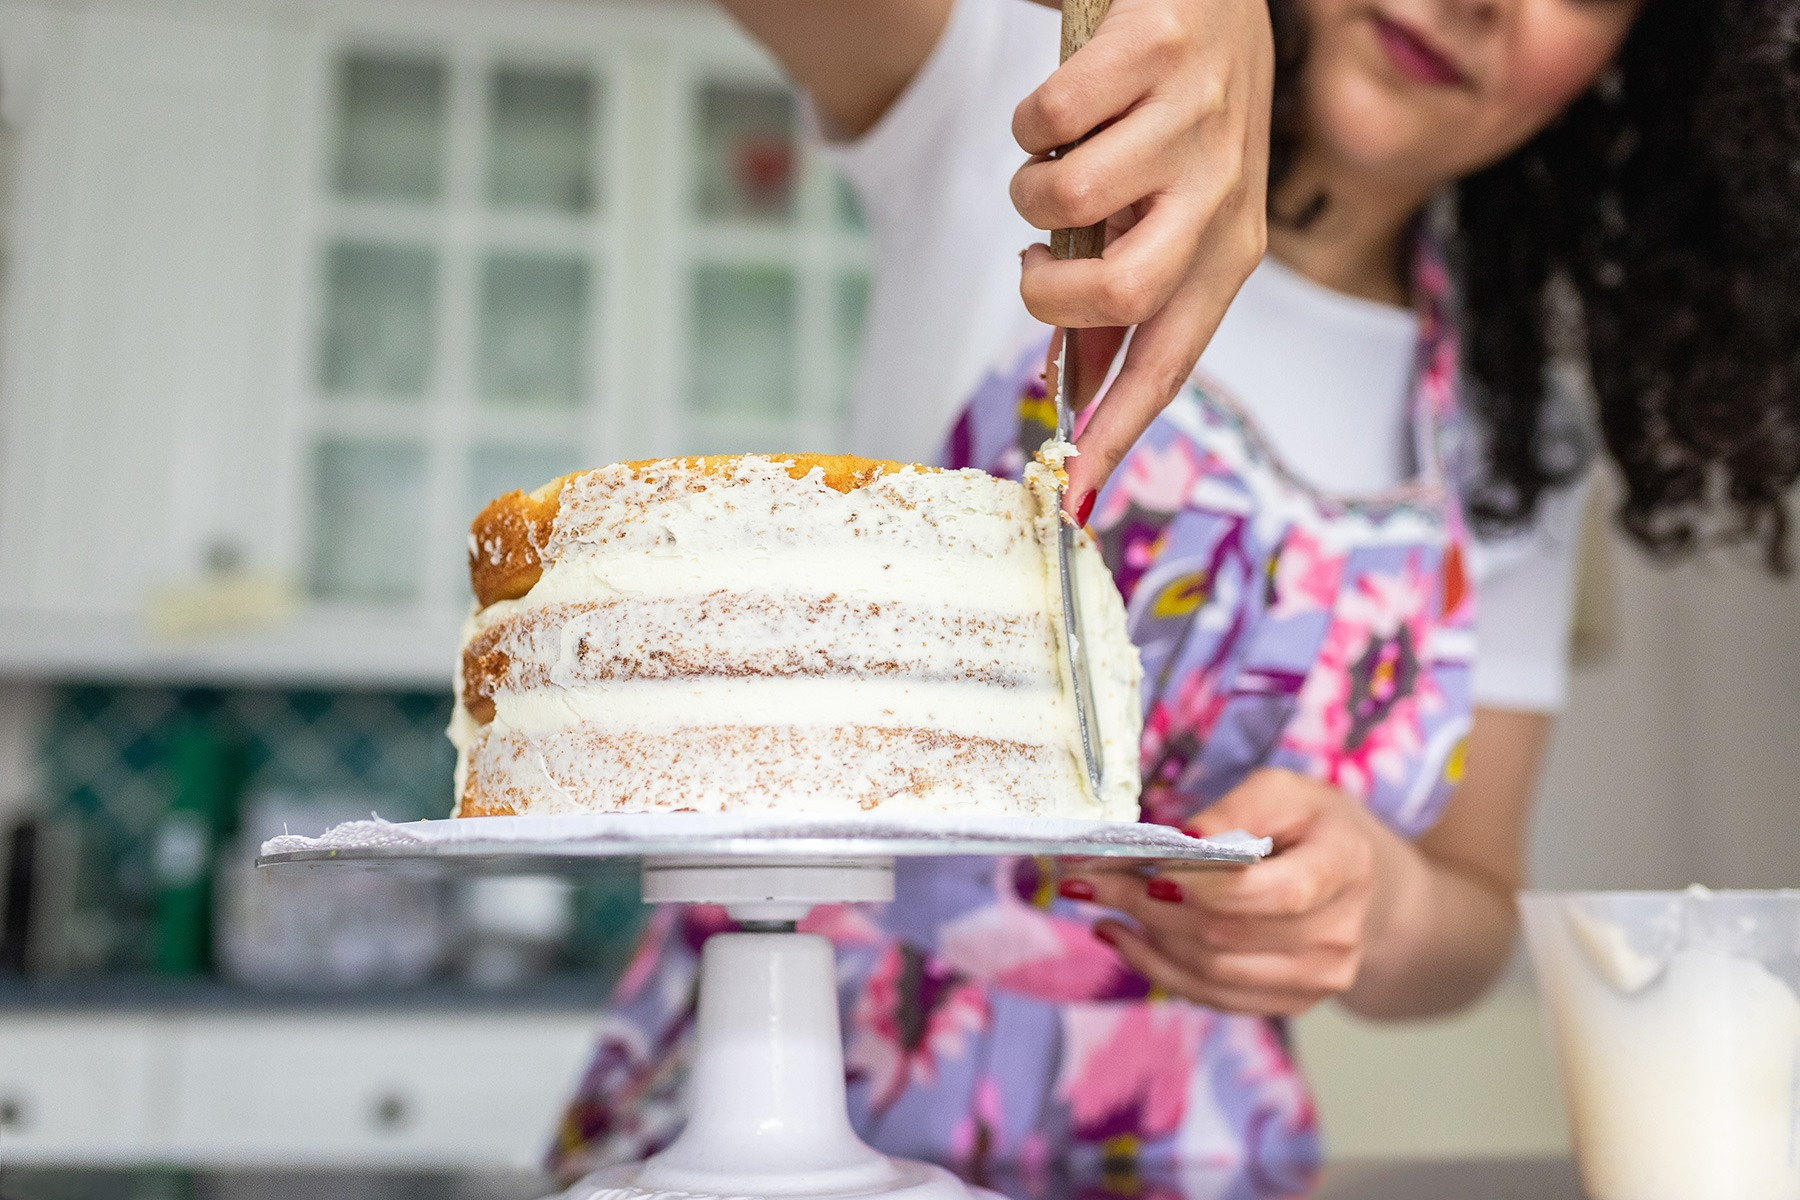 Rana's Delights decorating cake, baker based in Teddington and Richmond - Personal branding photoshoot in London